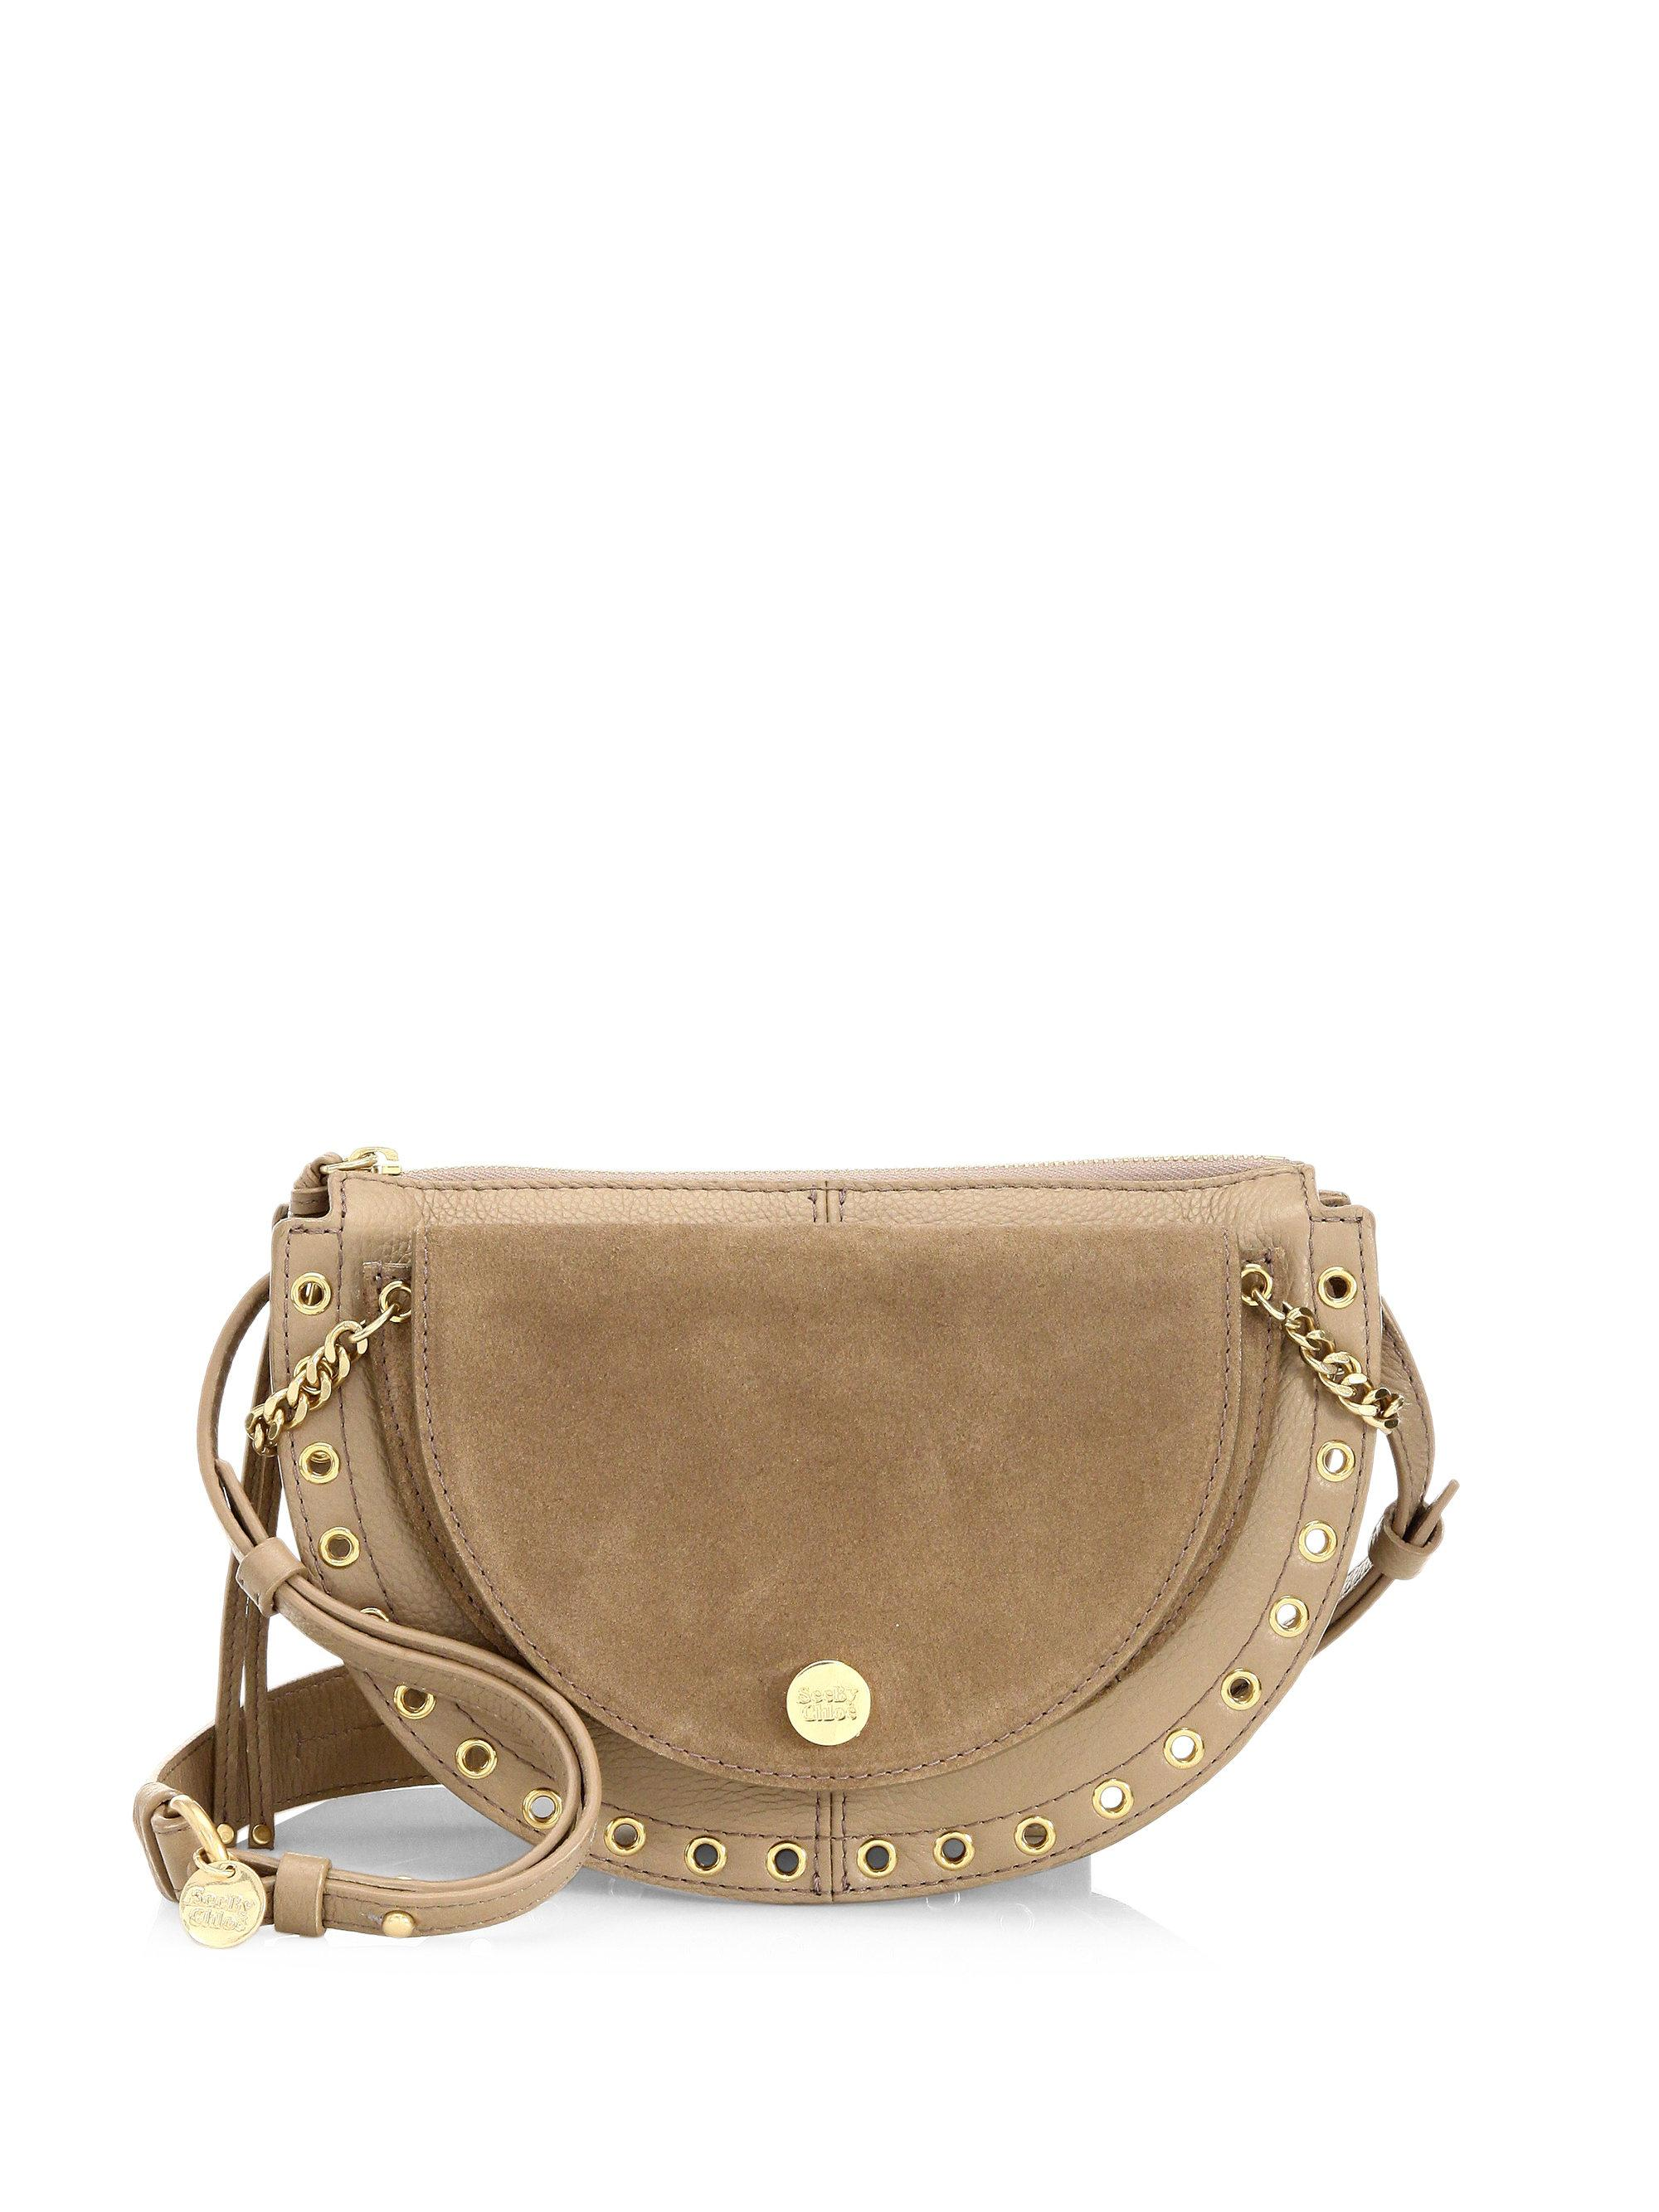 Kriss Small Crossbody Bag in Berry Pink Grained Cowhide Leather and Suede Leather See By Chloé lpI8GJ